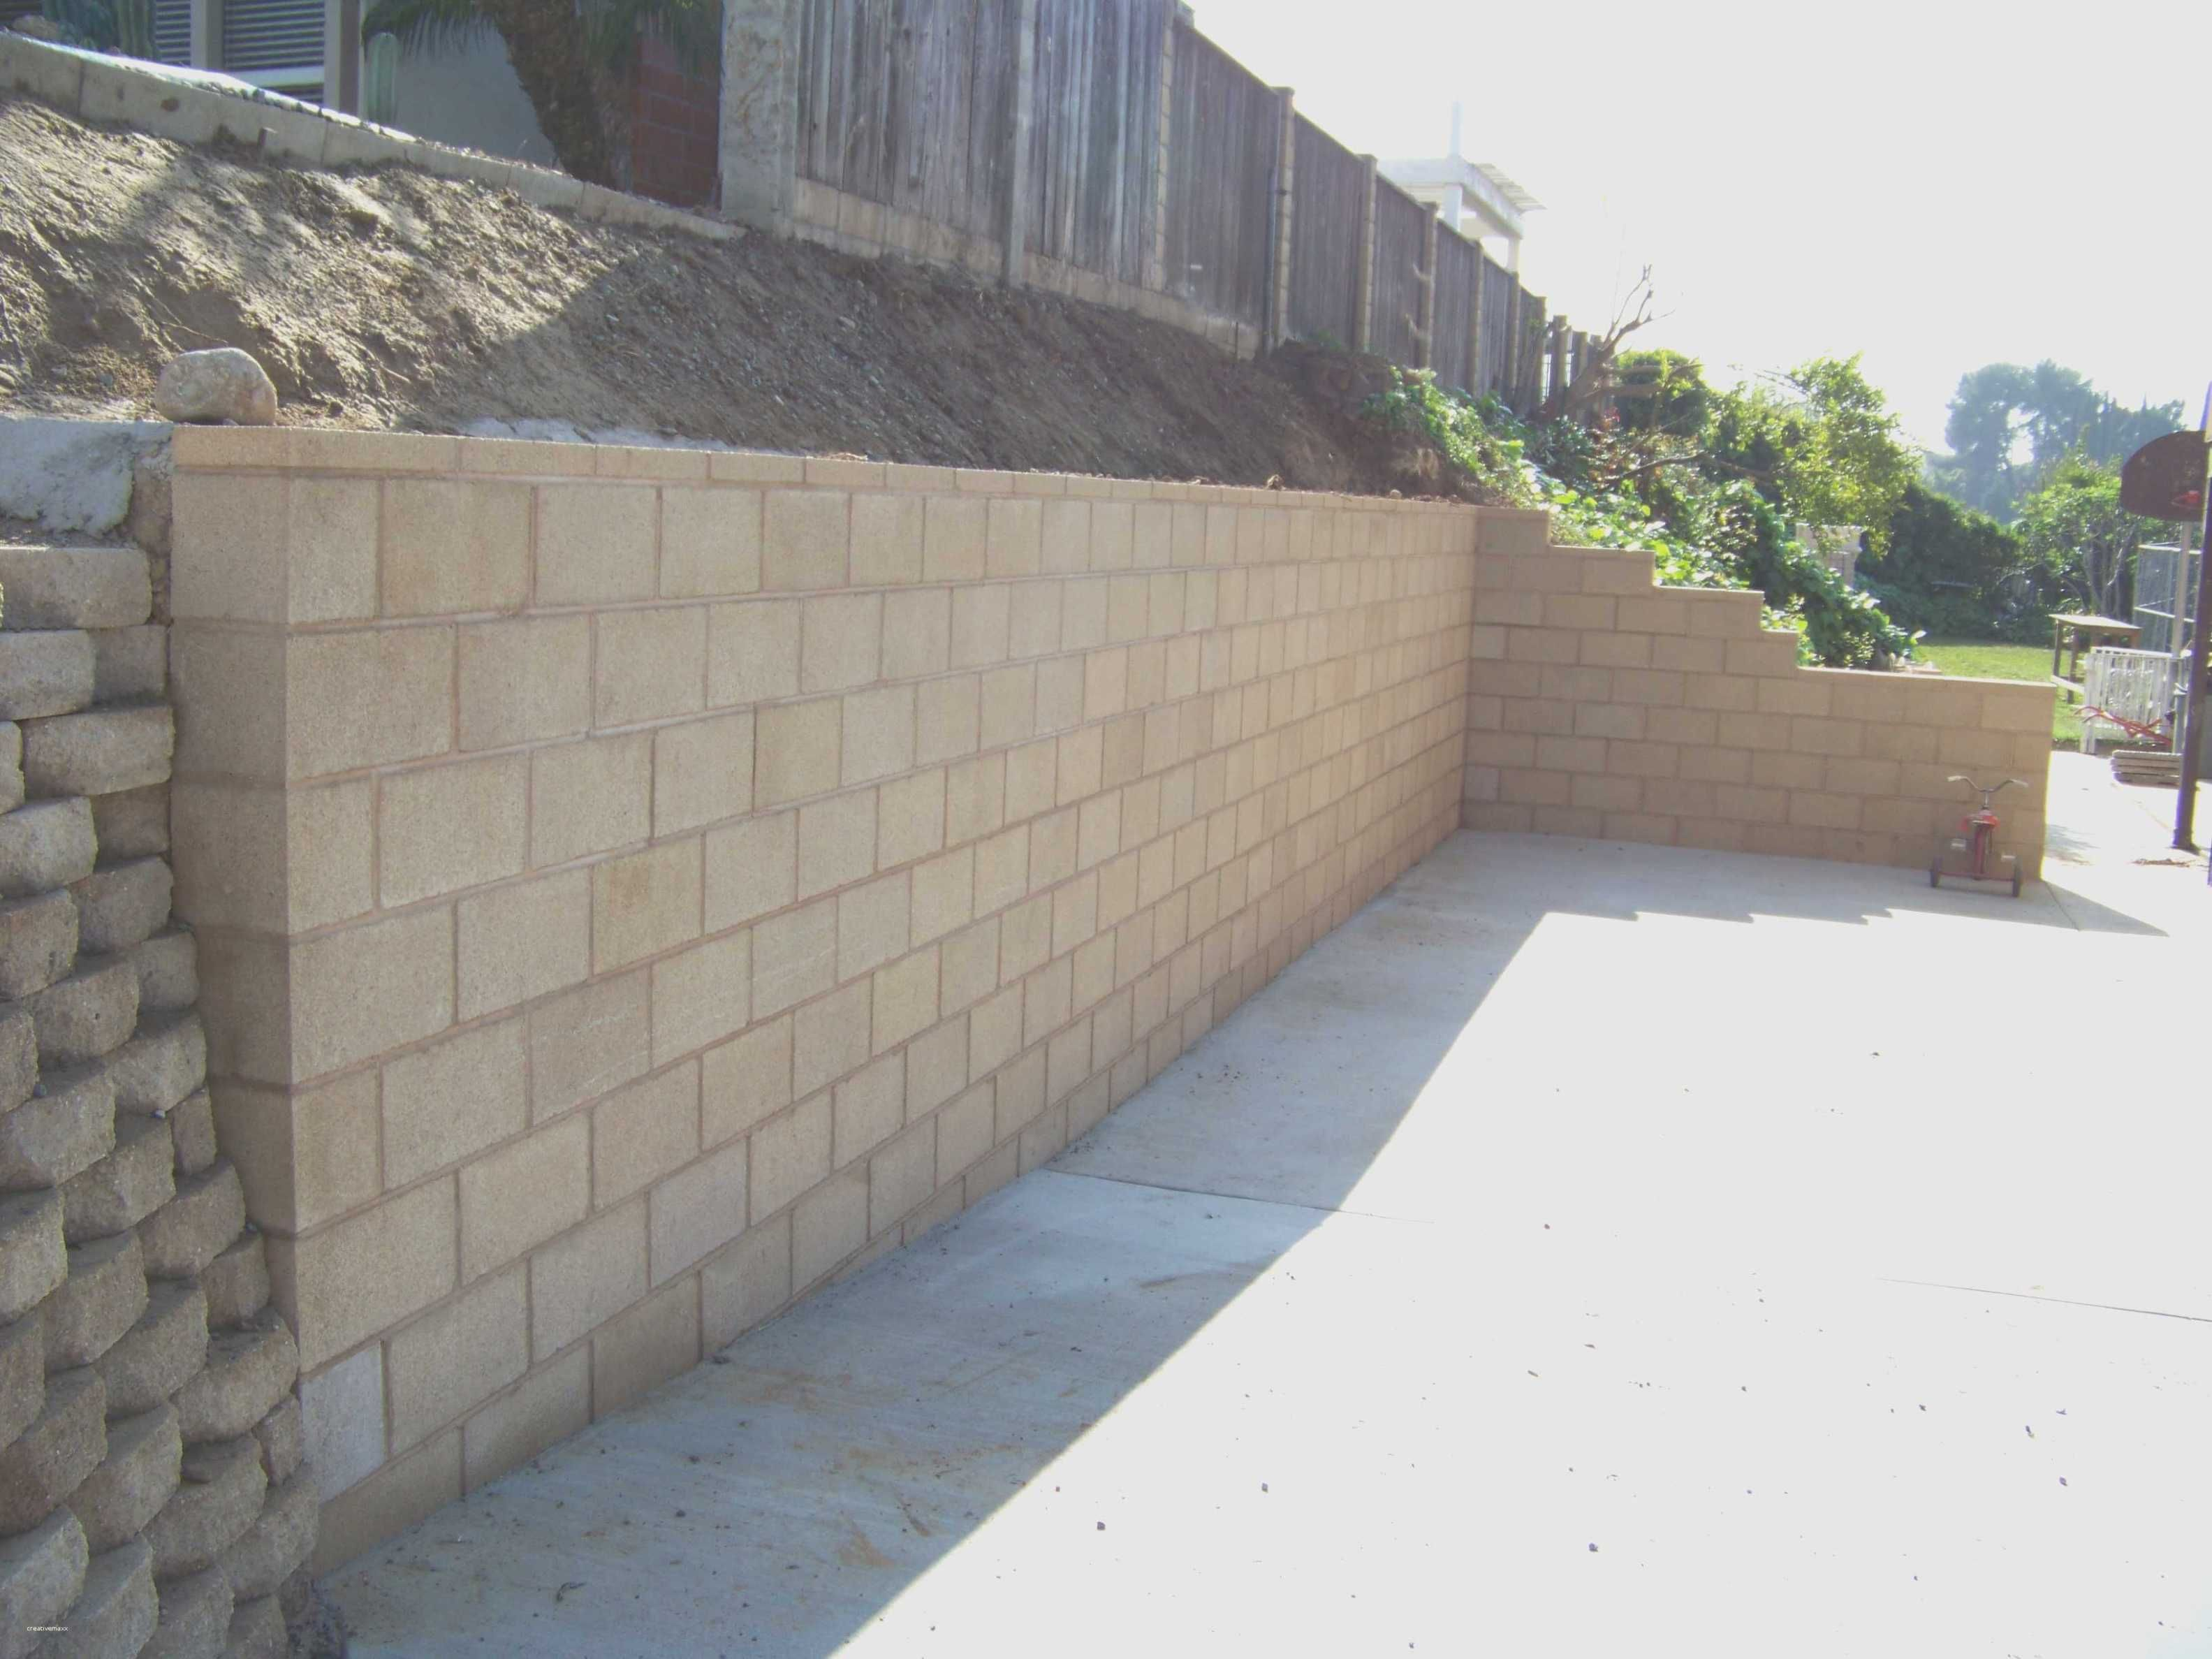 Modern Concrete Block Retaining Wall Home Act Concrete Retaining Walls Retaining Wall Concrete Block Walls